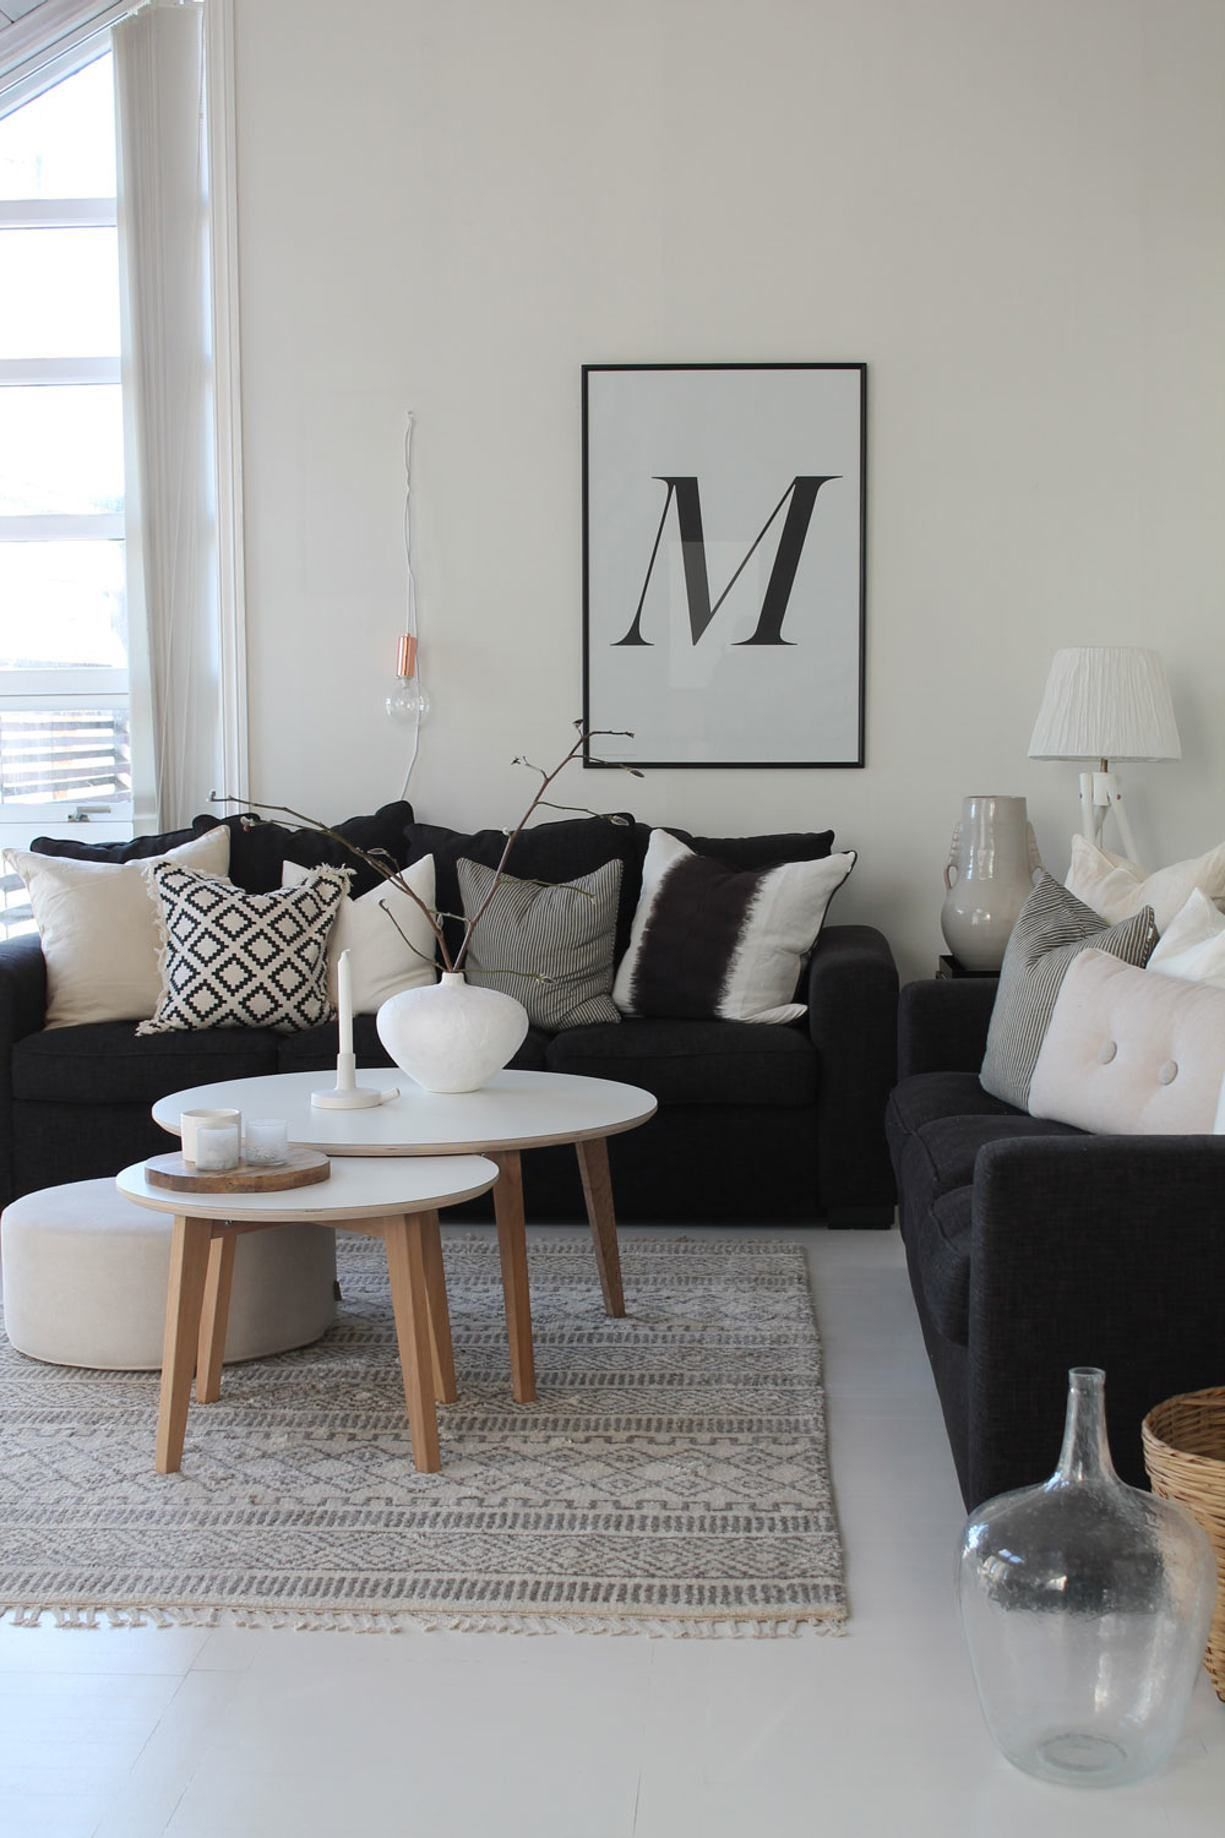 black & white with some textures pillows rug wood baskets